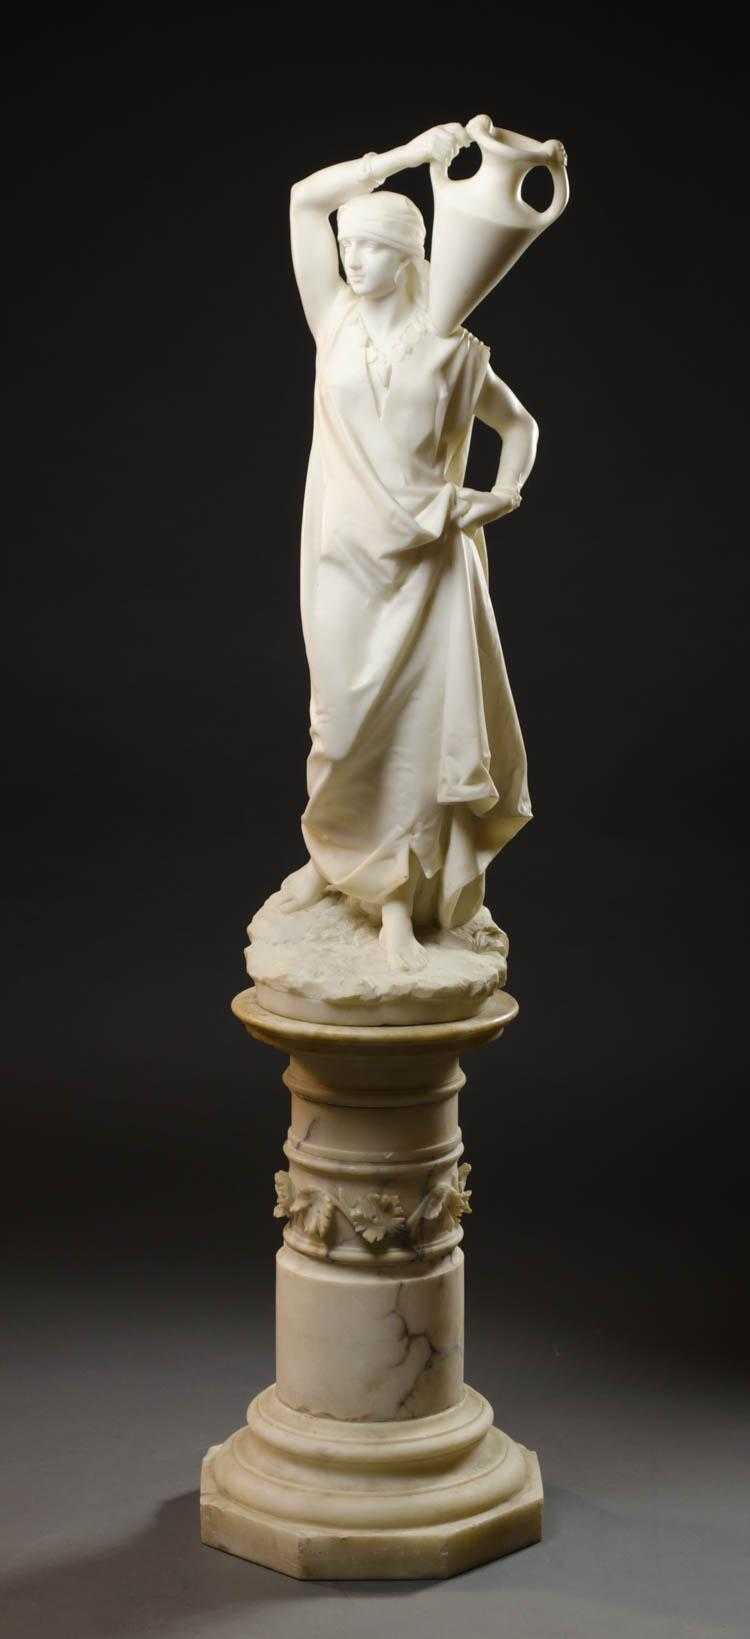 EMILE BOYER FIGURAL MARBLE SCULPTURE ON PEDESTAL